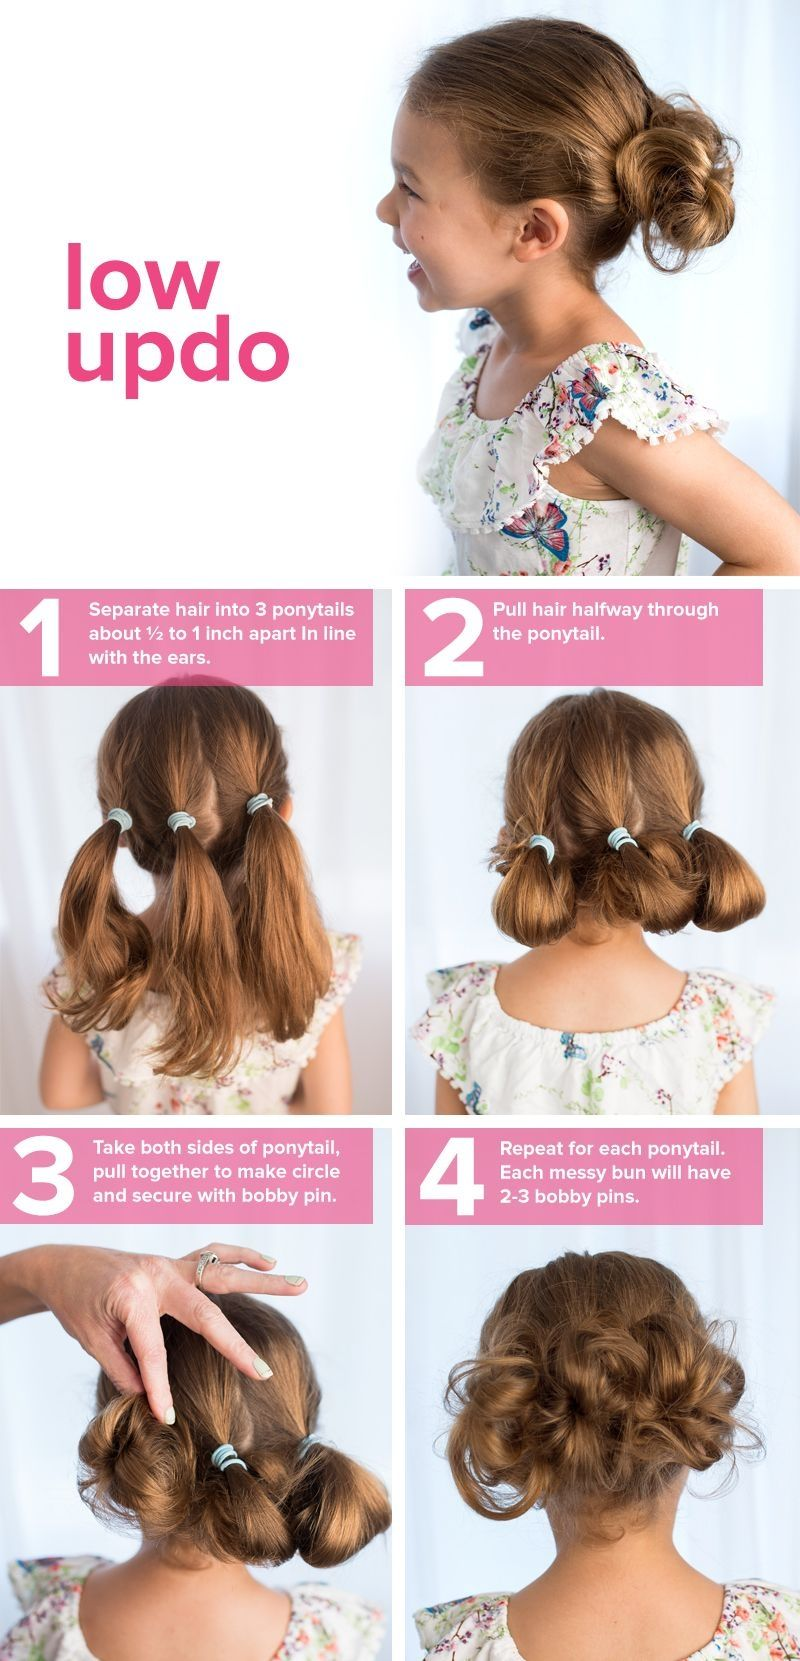 170 Easy Hairstyles Step By Step Diy Hair Styling Can Help You To Stand Apart From The Crowds Dengan Gambar Gaya Rambut Pendek Rambut Pendek Gaya Rambut Kepang